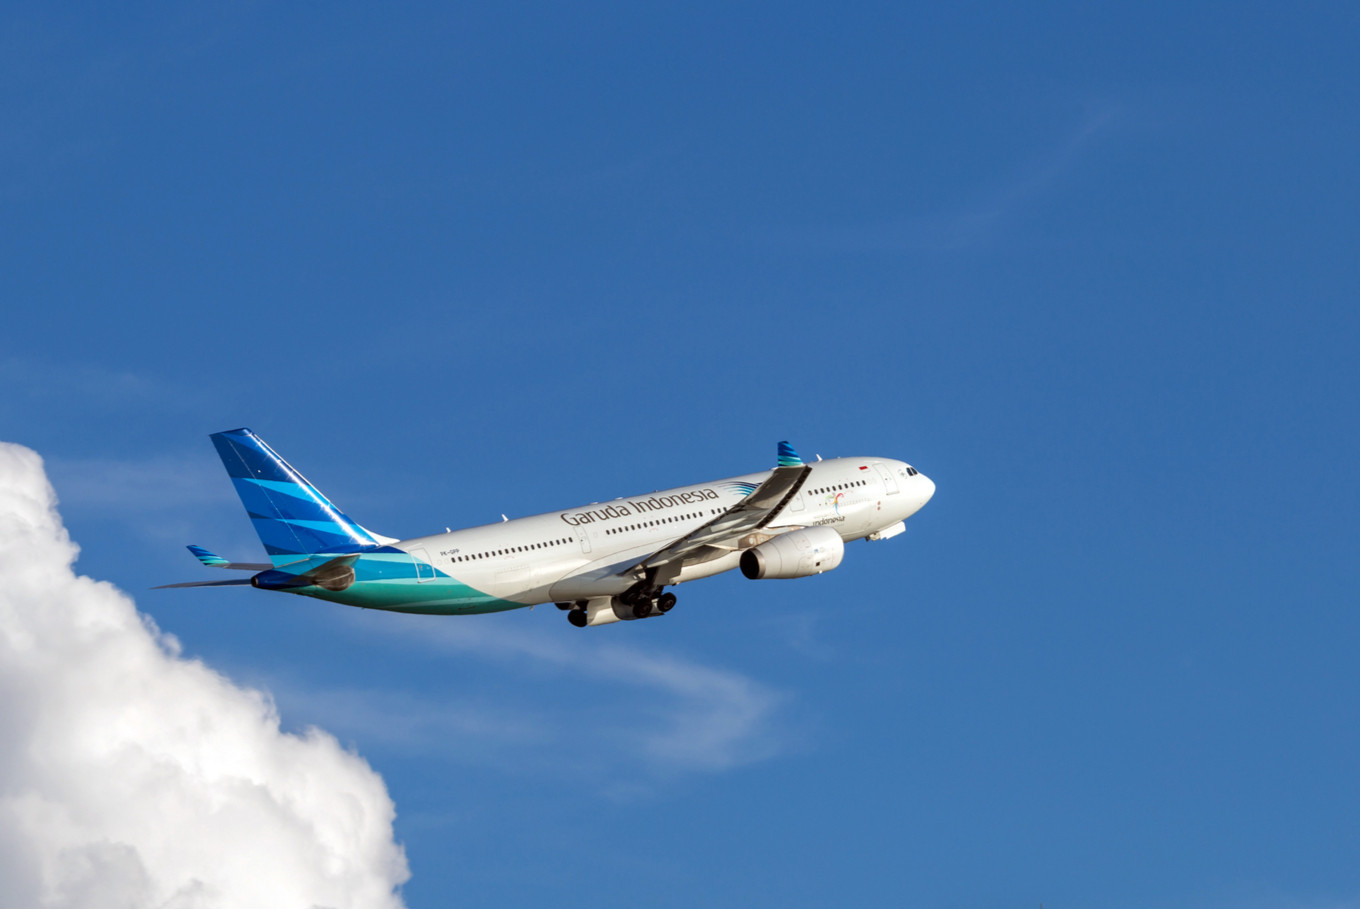 Garuda Indonesia diverts Bali-Perth flight to save passenger's life